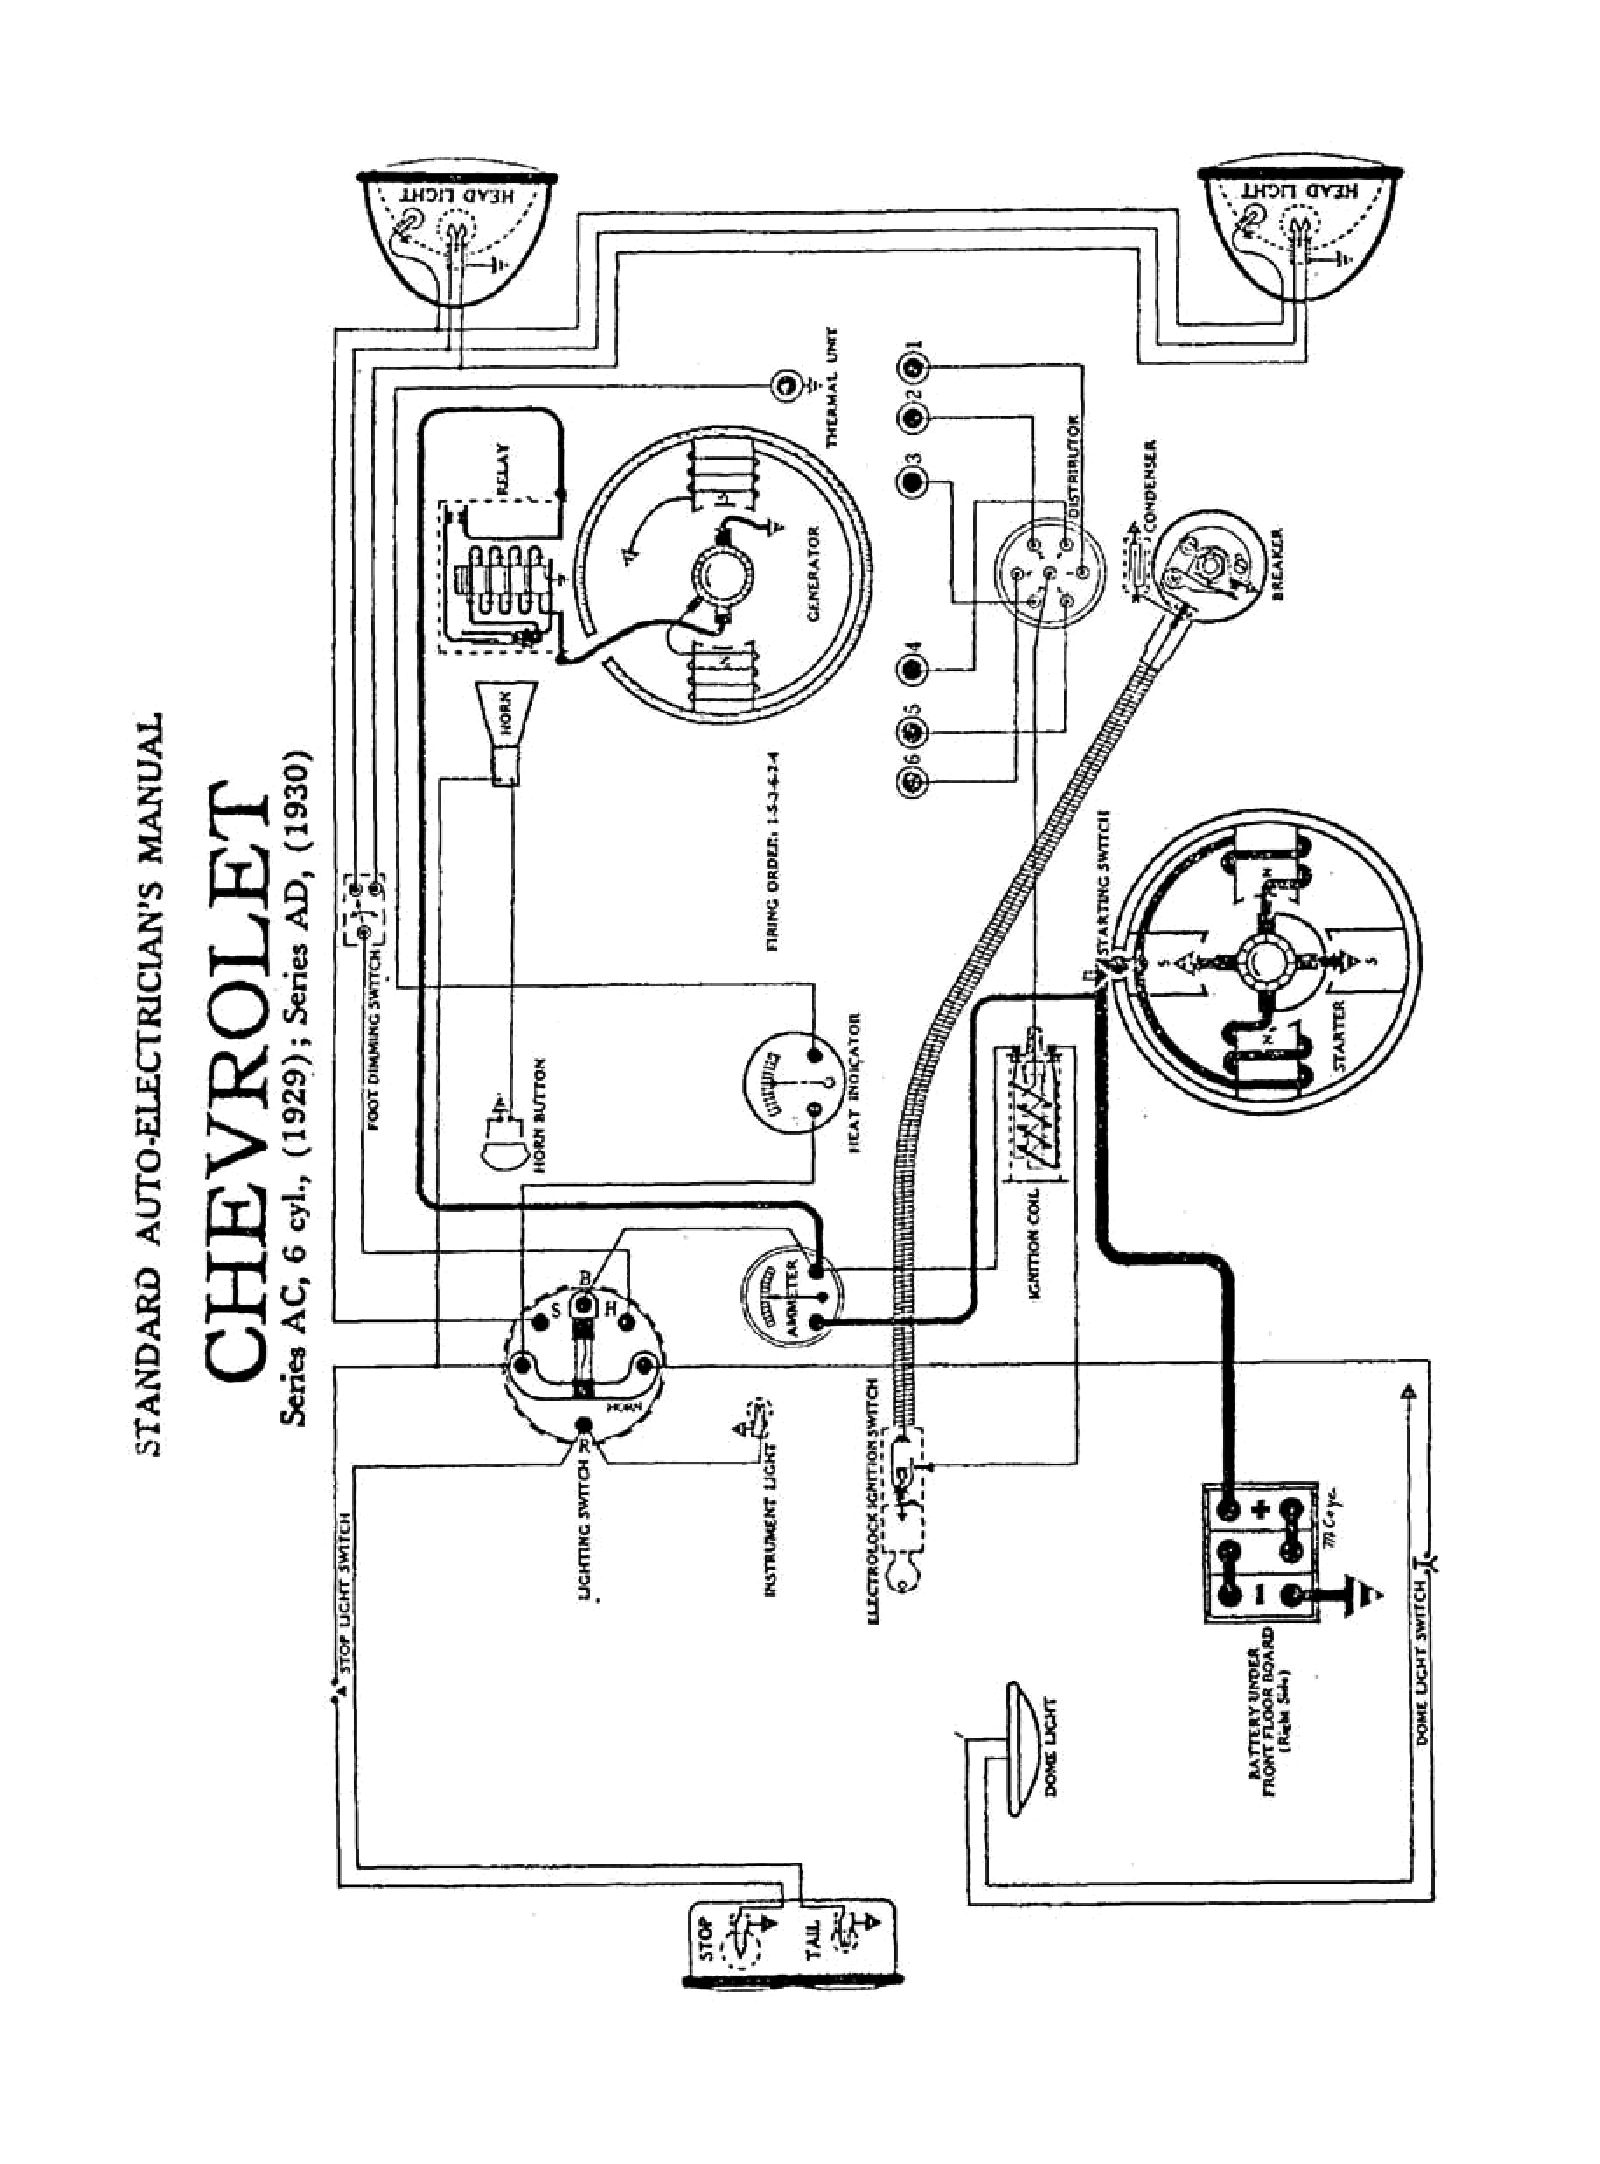 1929 ford electrical wiring